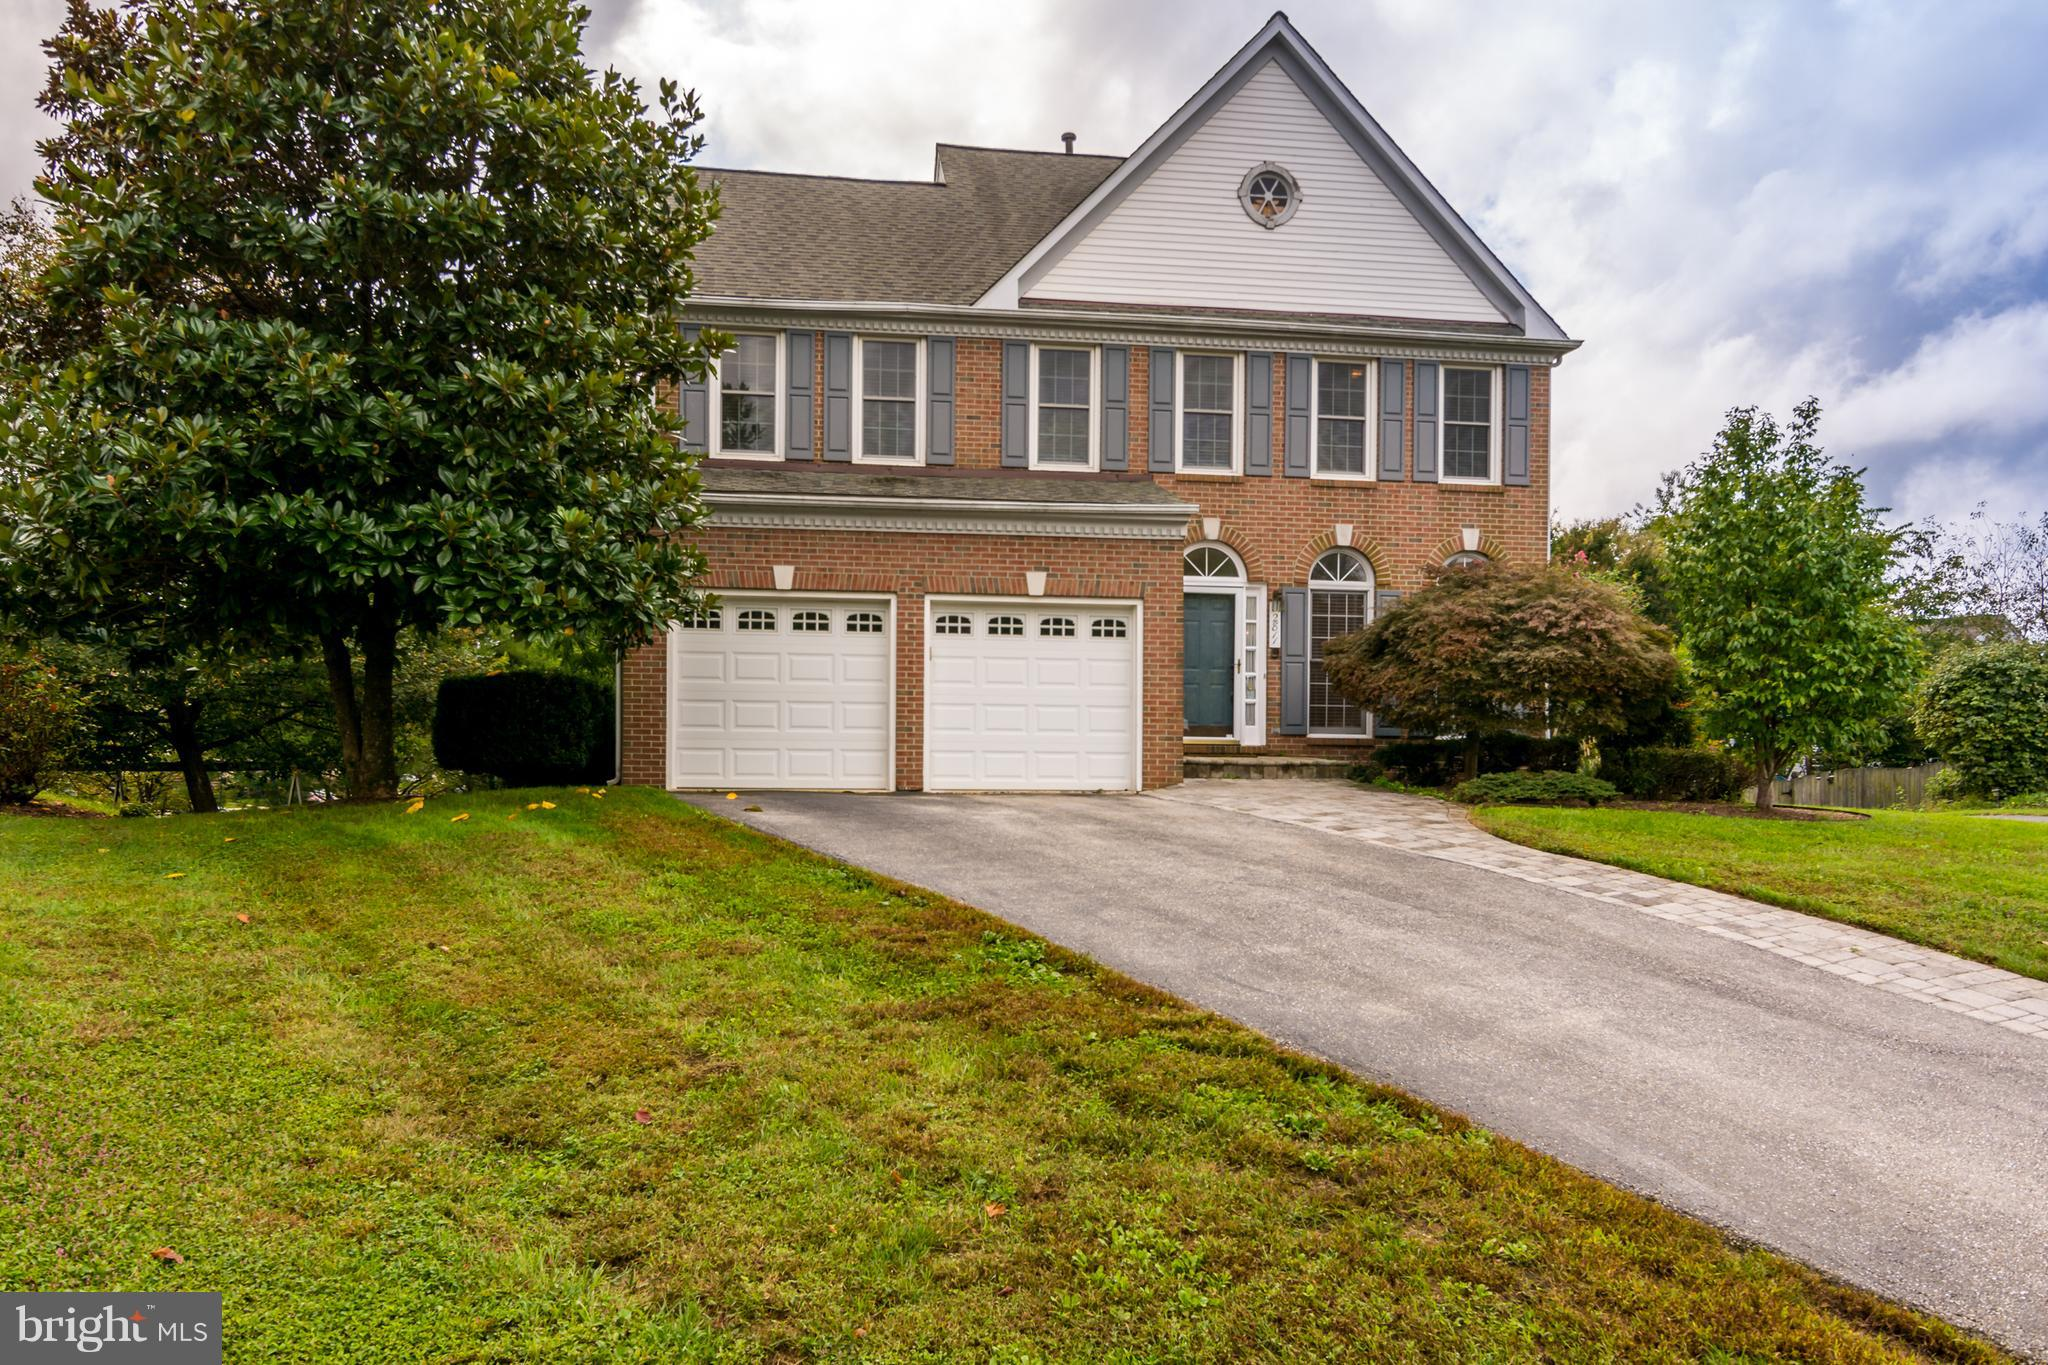 2811 KLEIN COURT, CROFTON, MD 21114